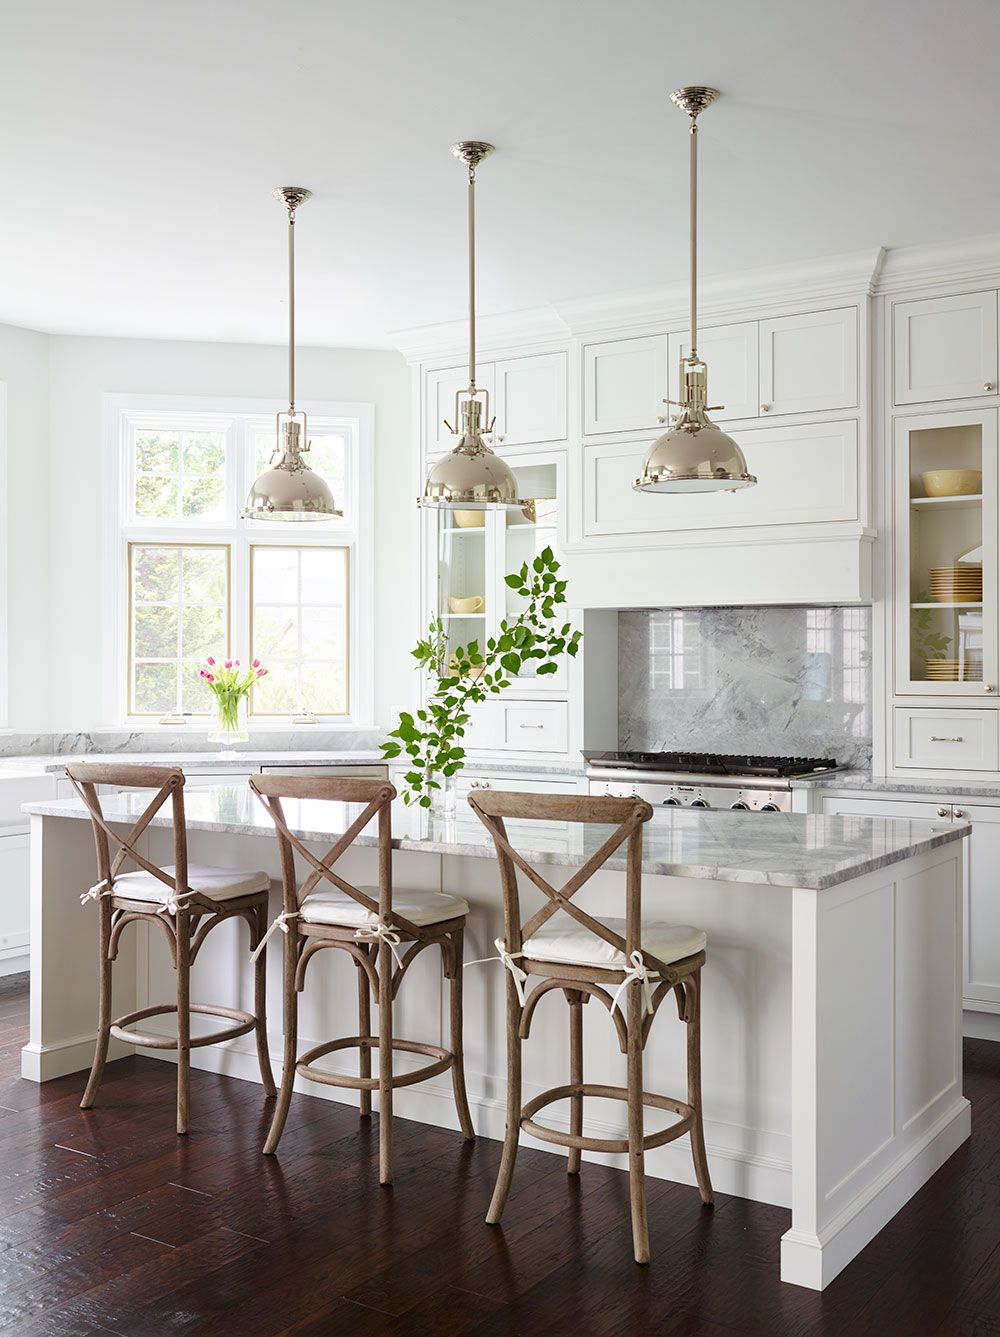 Bright White Custom Kitchen Designed by SHOPHOUSE. Floor to ceiling ...